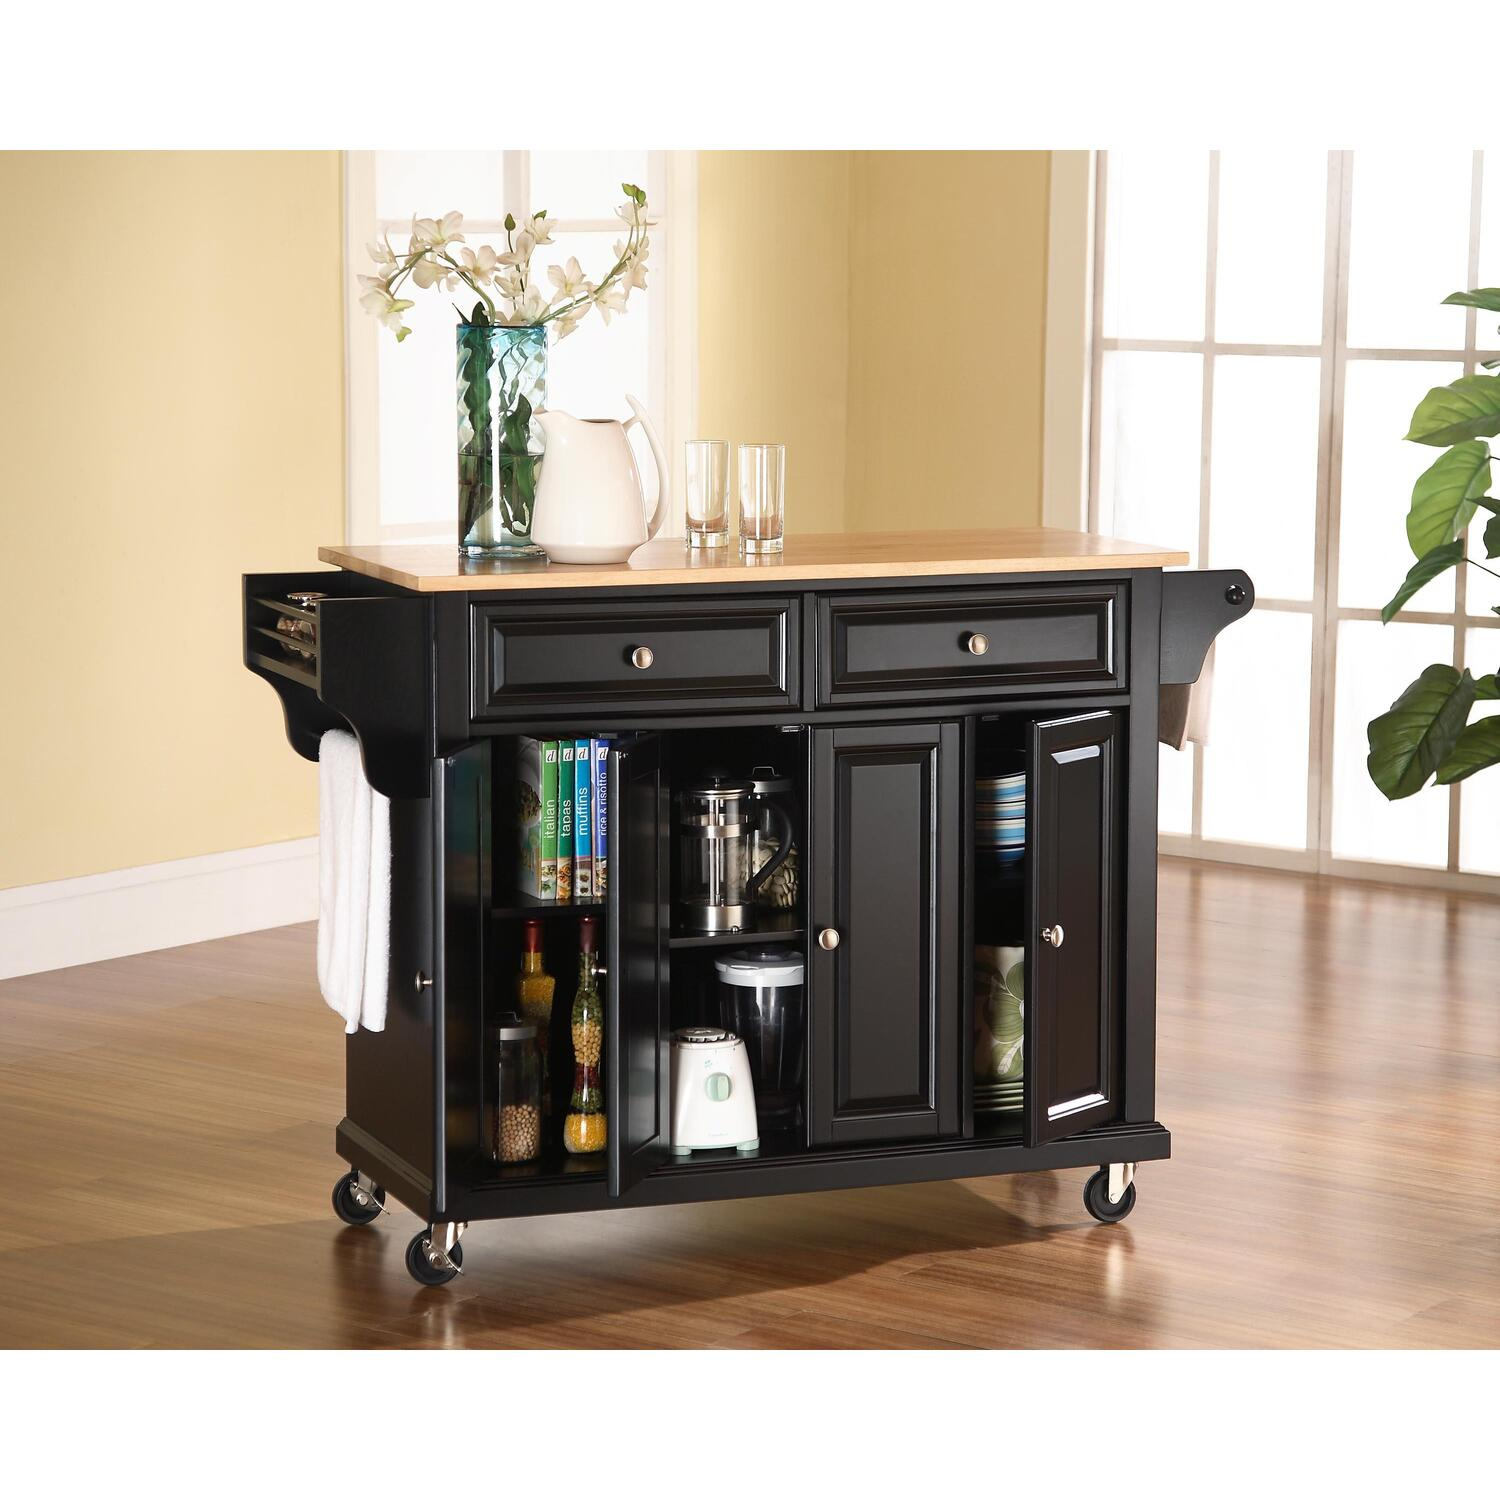 Kitchen Storage Island Cart Kitchen Cart/island - From $369.00 To $460.00 | Ojcommerce